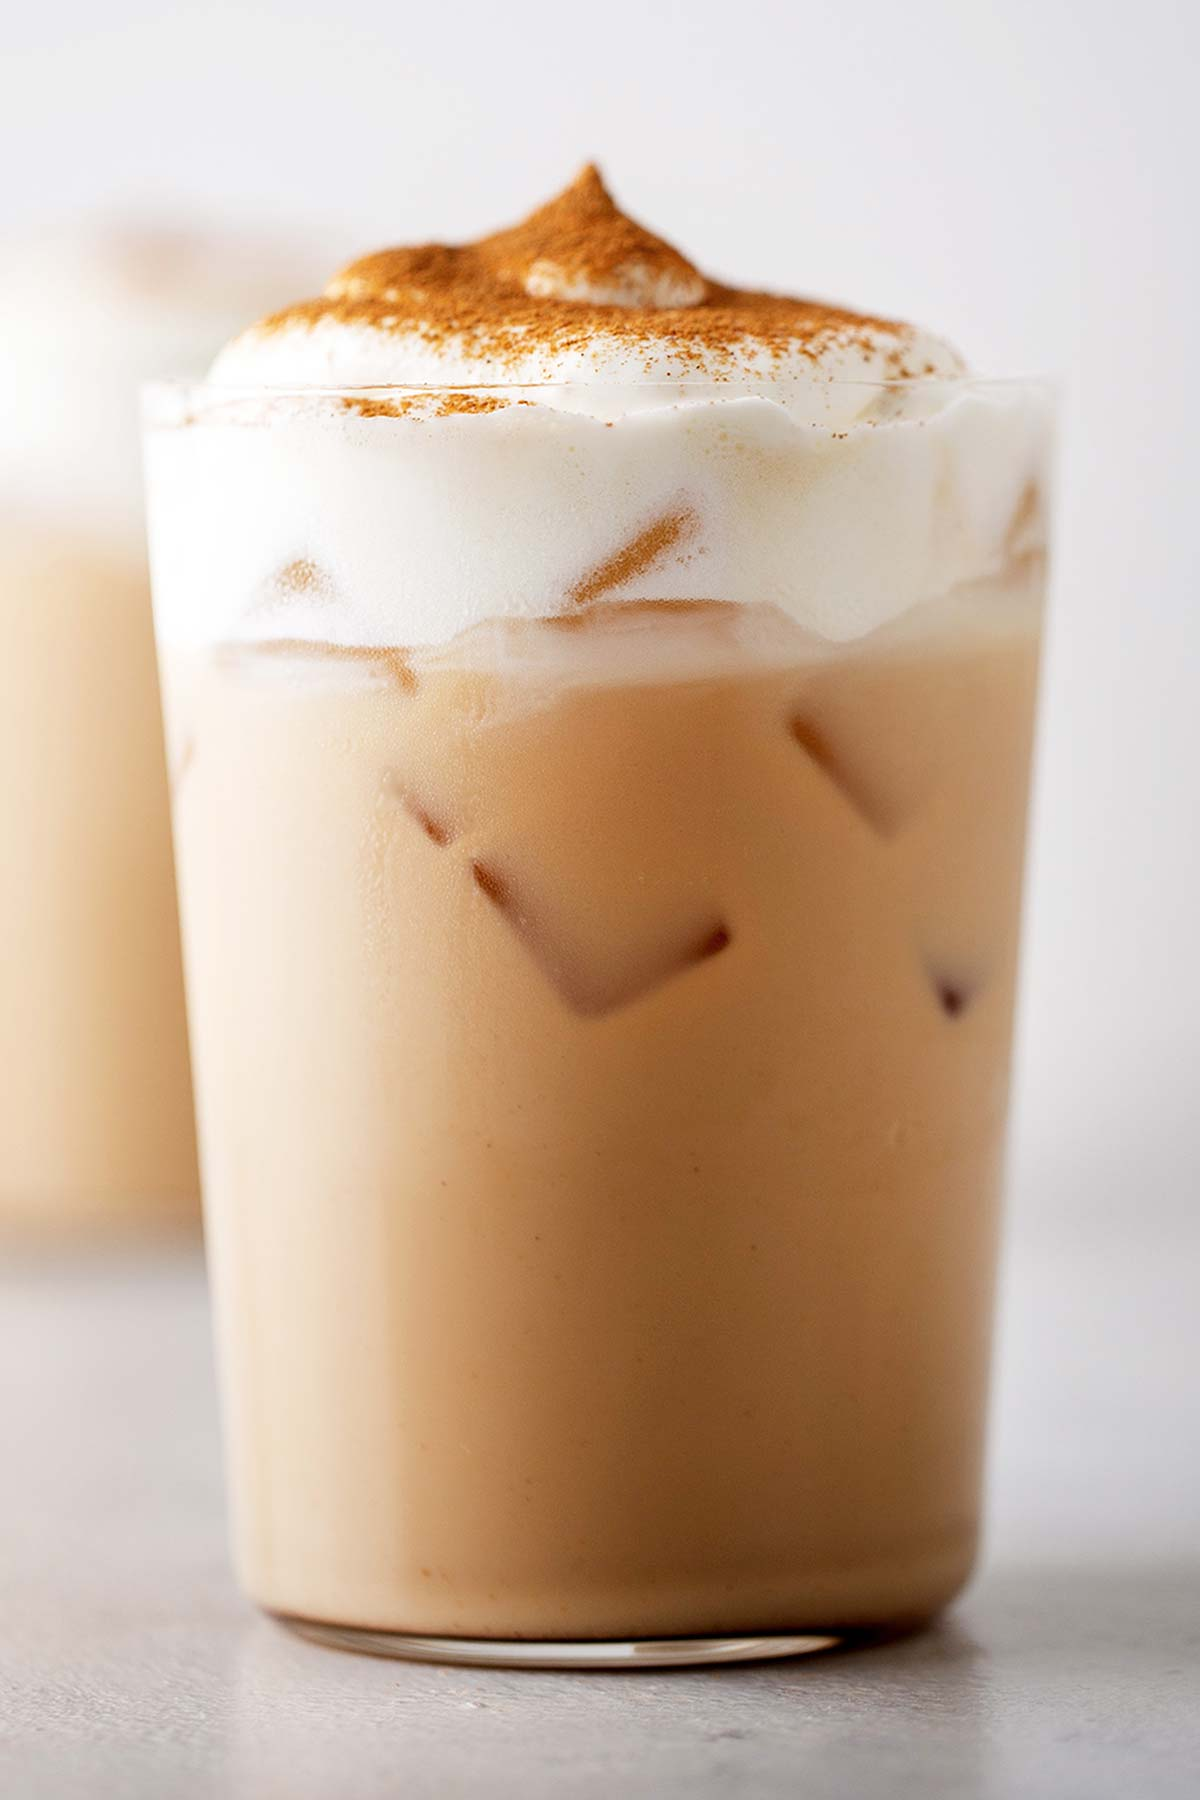 Iced Pumpkin Spice Latte in a cup with whipped cream.